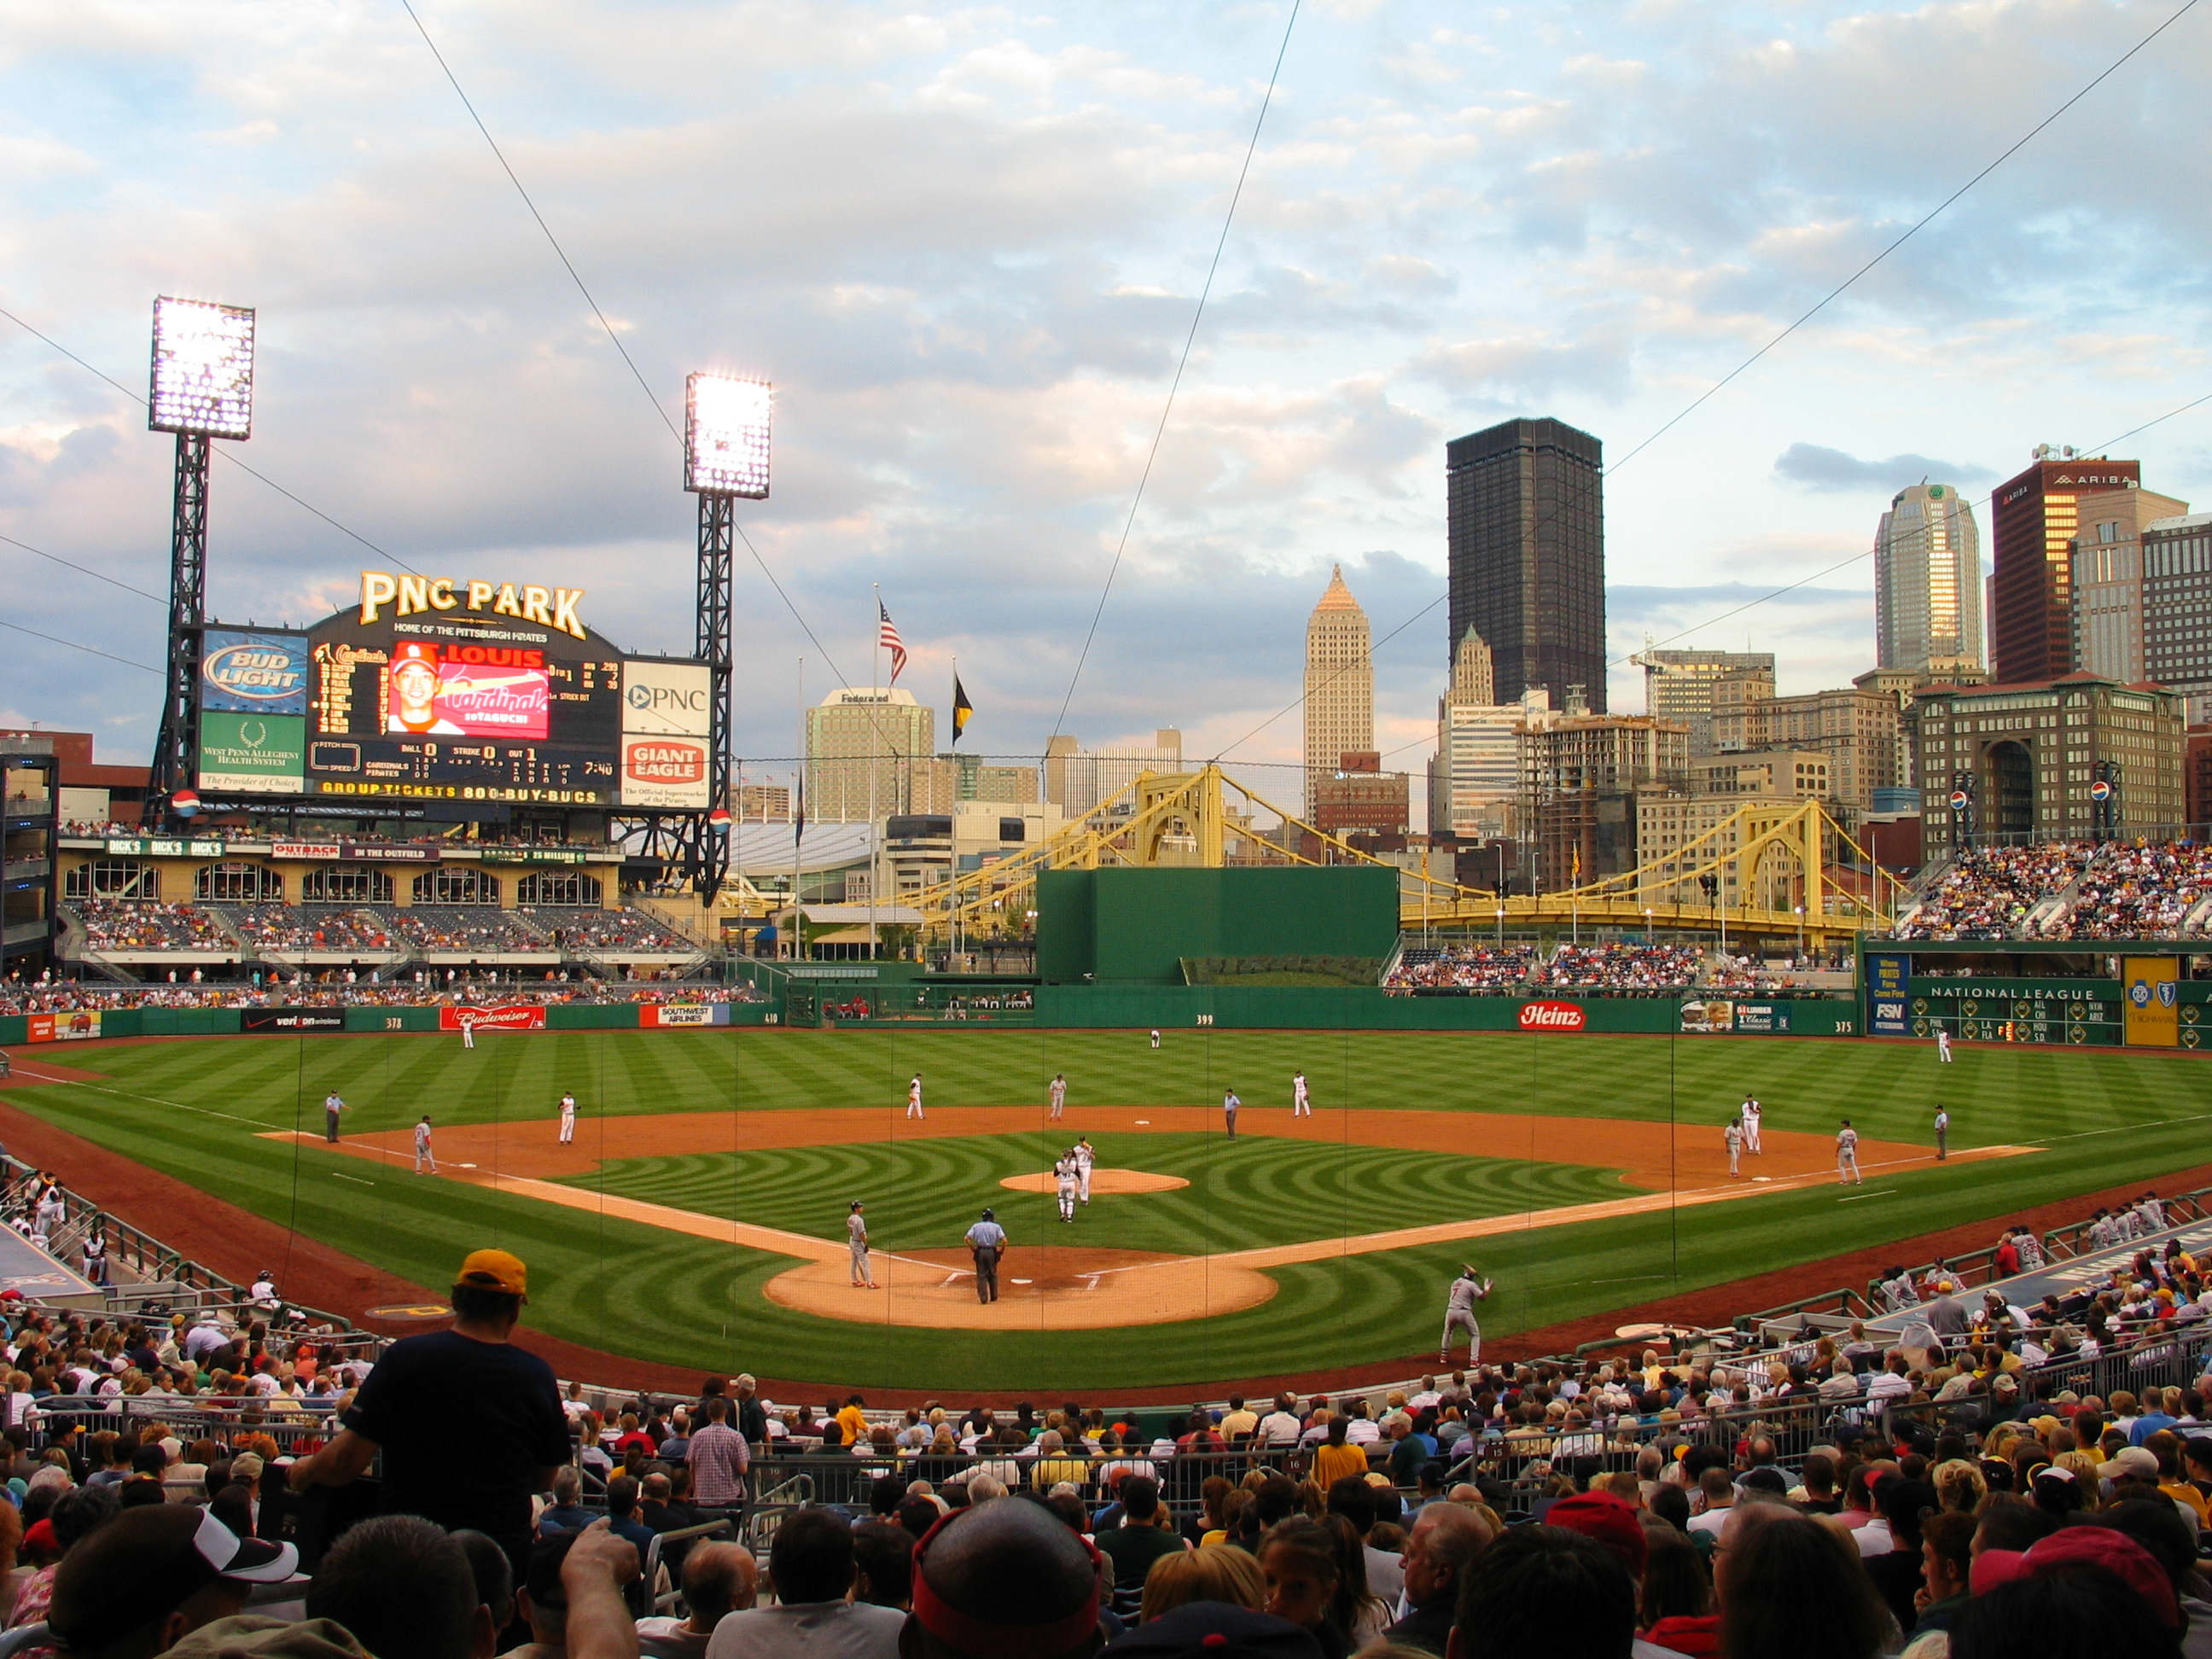 pittsburgh_037_pnc_park